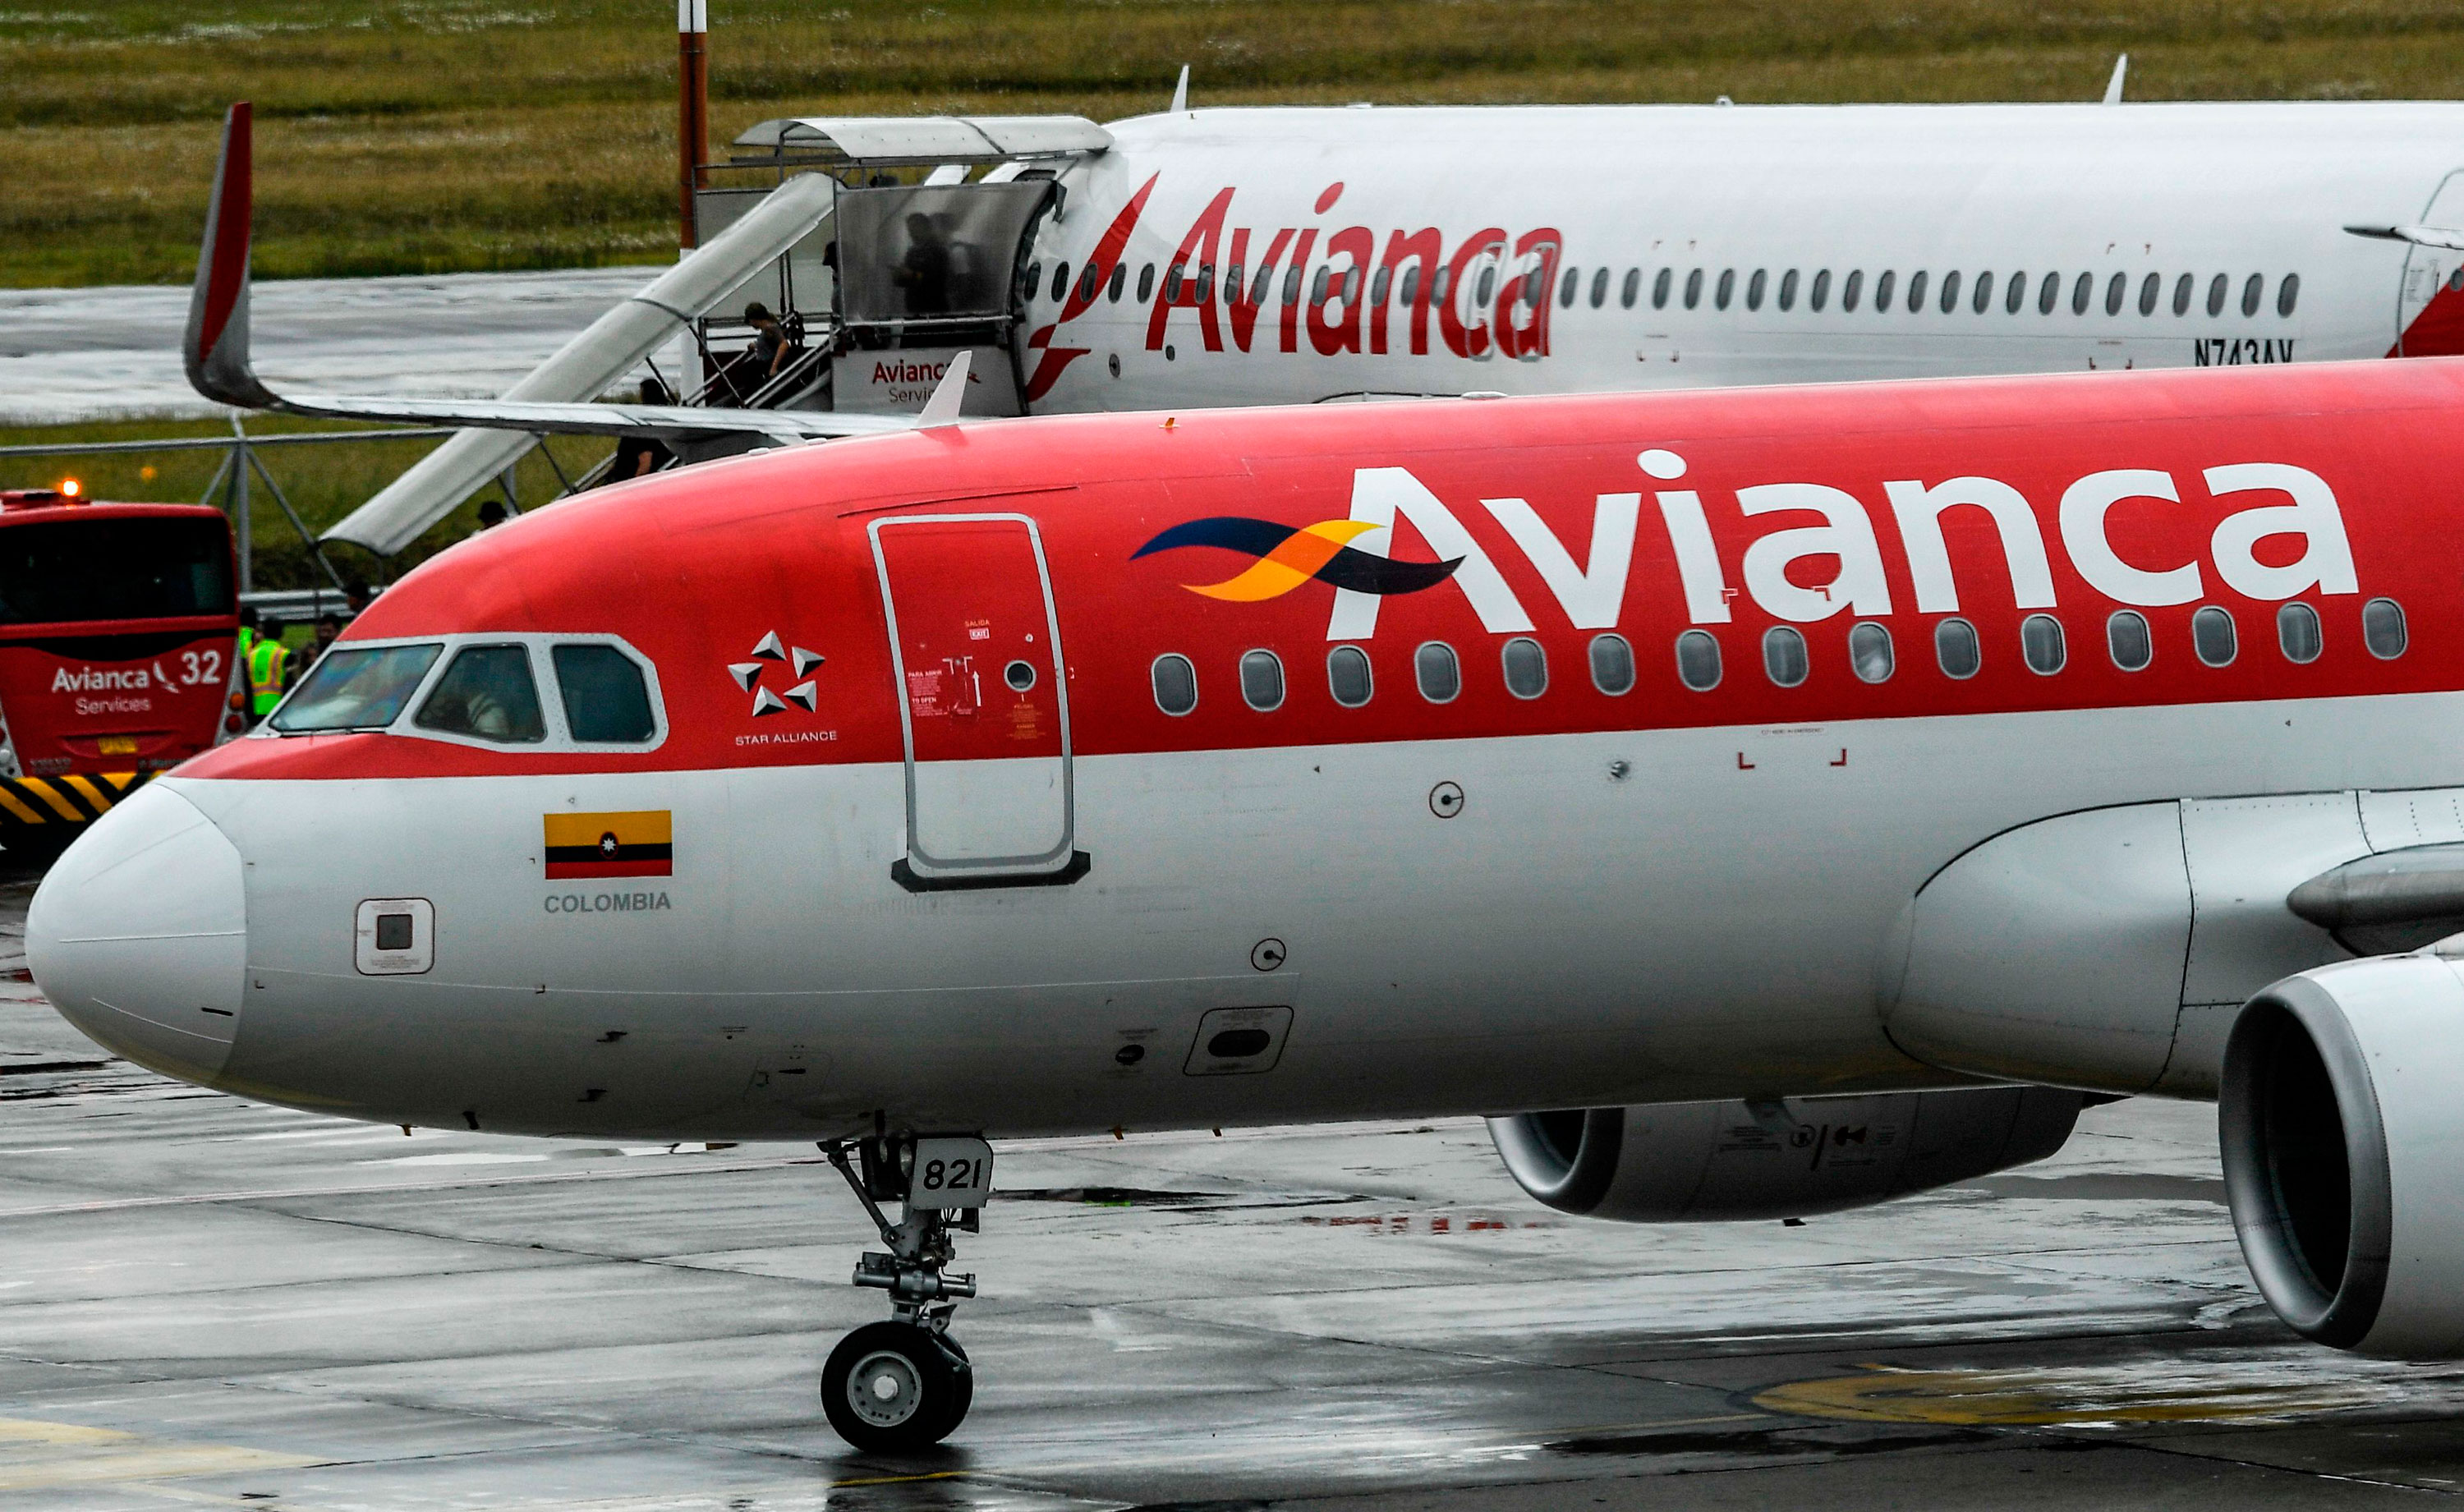 Aircraft of Colombian airline Avianca are seen on the tarmac at El Dorado International Airport in Bogota on August 28, 2019.